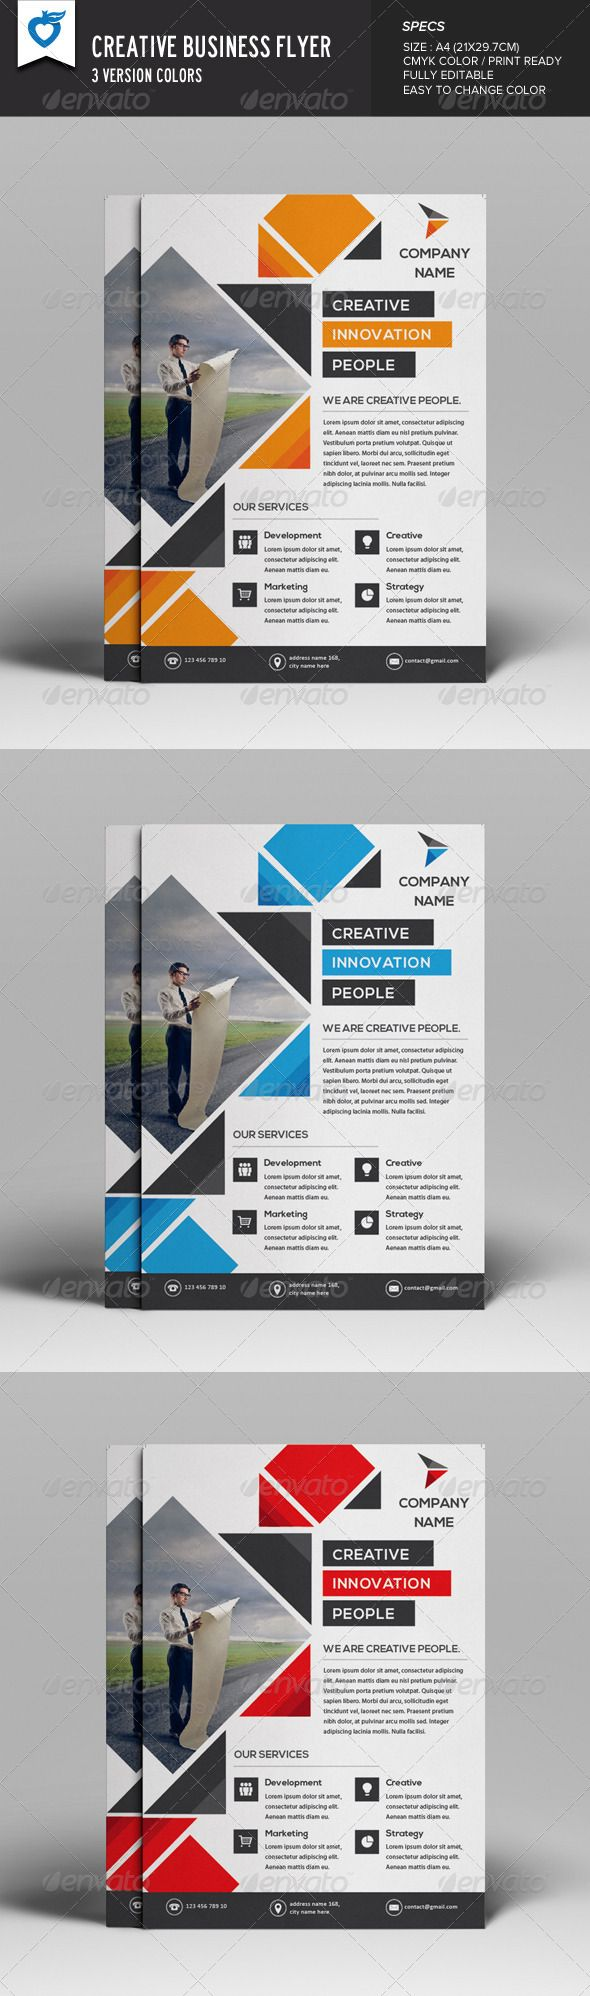 Creative Business Flyer PSD Template | Buy and Download: http://graphicriver.net/item/creative-business-flyer/8132559?WT.ac=category_thumb&WT.z_author=LeafLove&ref=ksioks